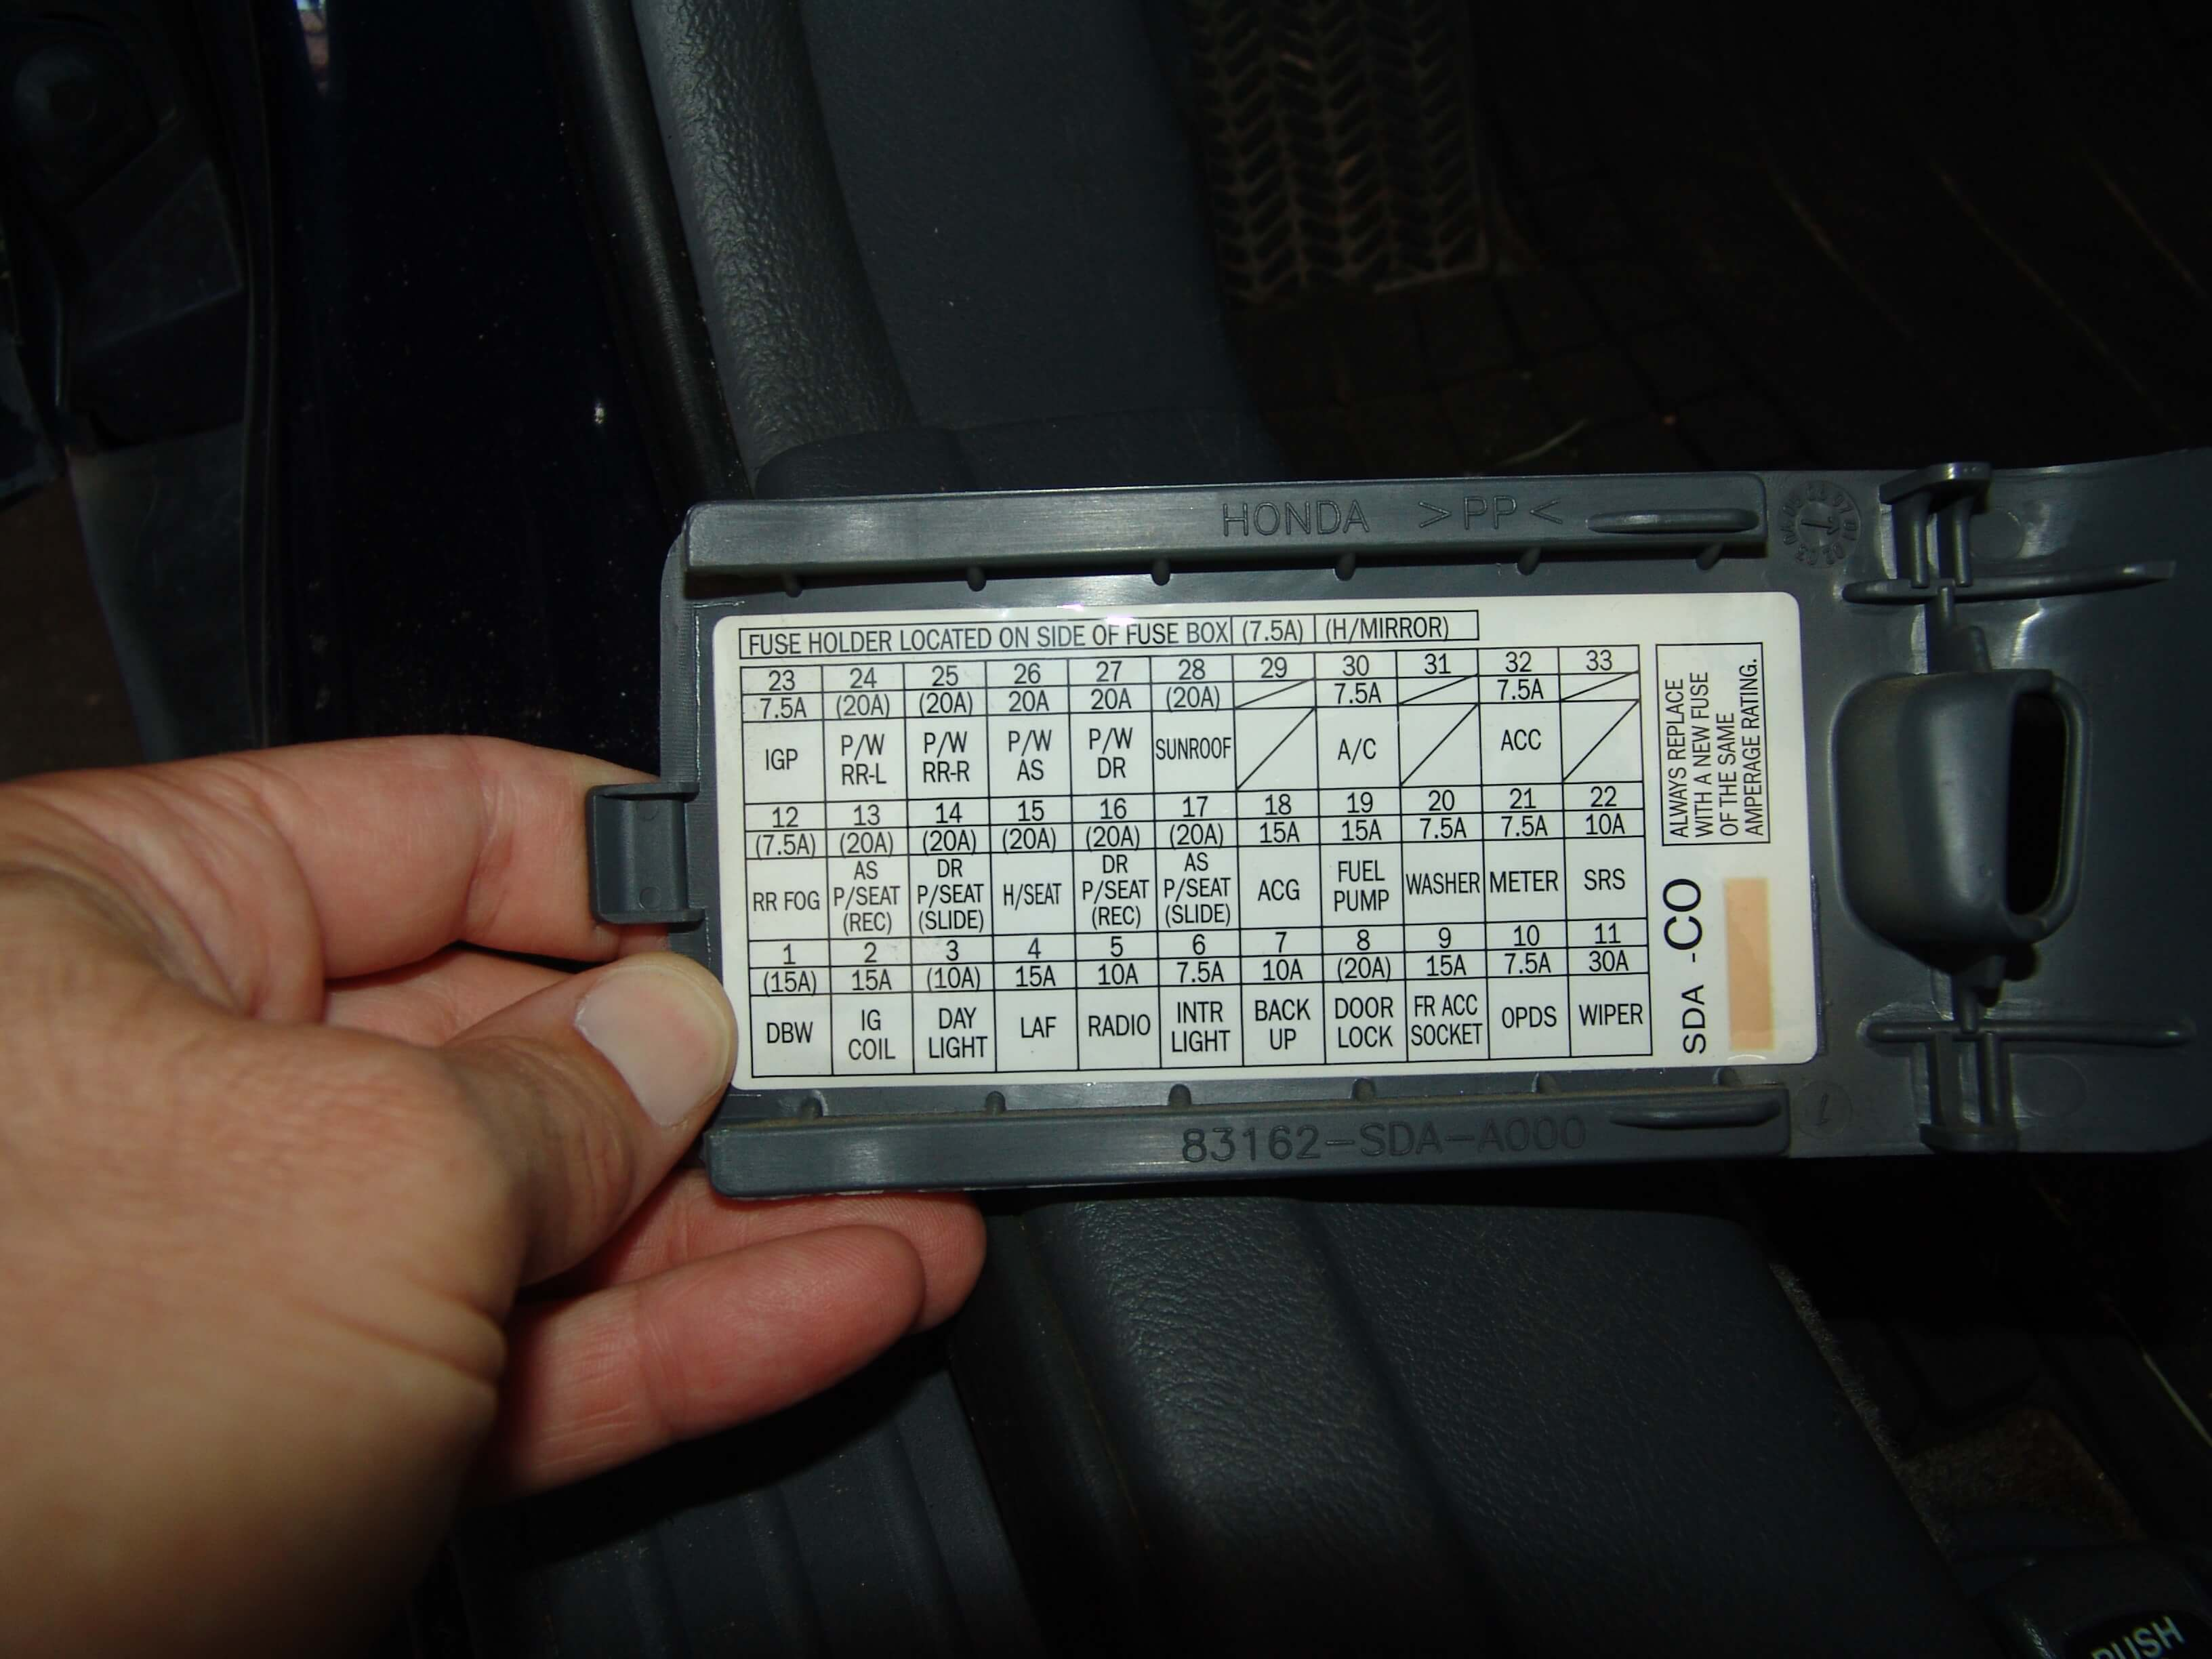 Honda Accord Main Relay Diagram Together With 1990 Honda Accord